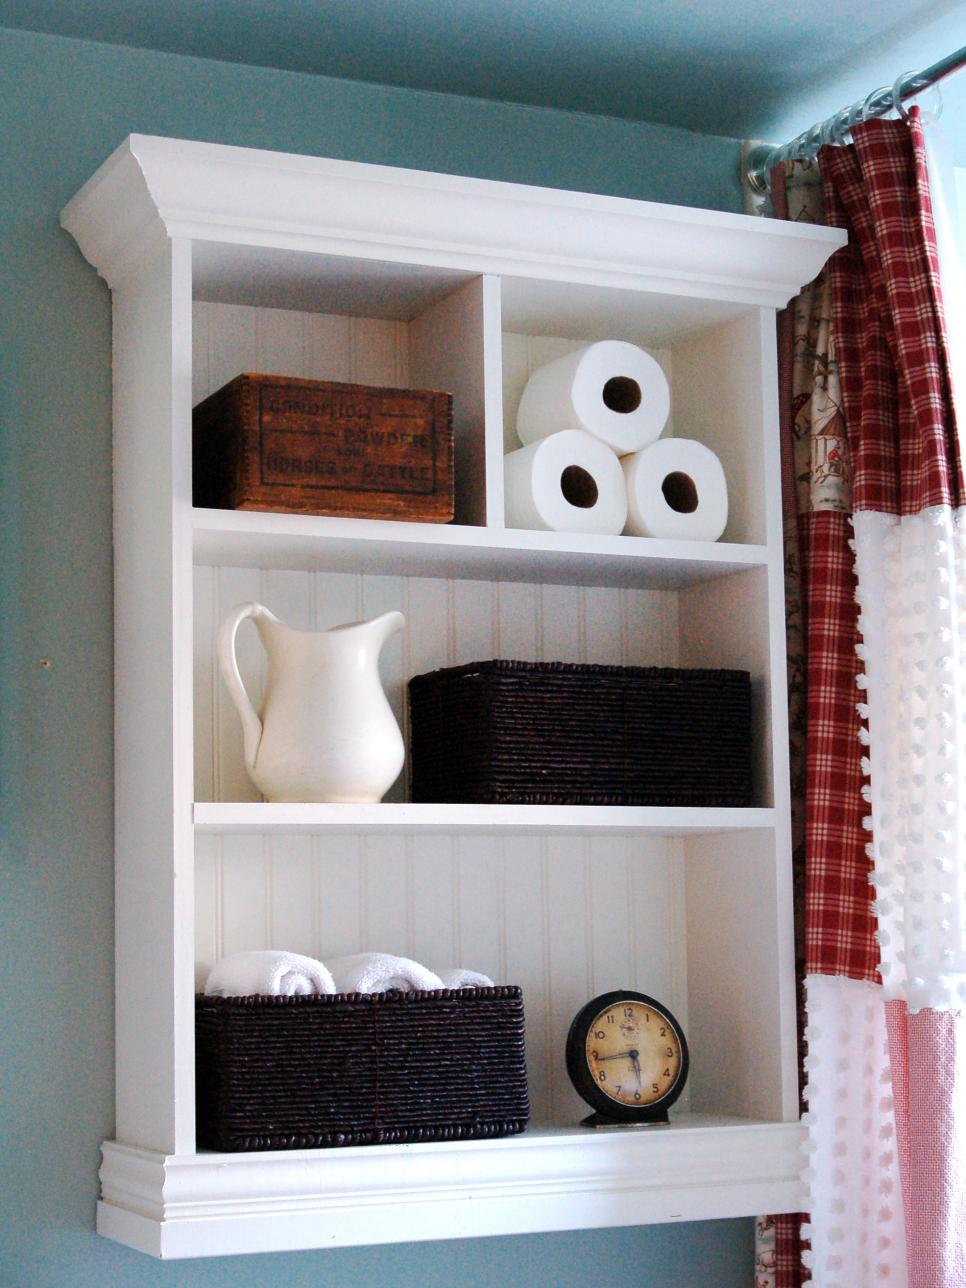 Clever Bathroom Storage Ideas HGTV - Washroom storage for small bathroom ideas